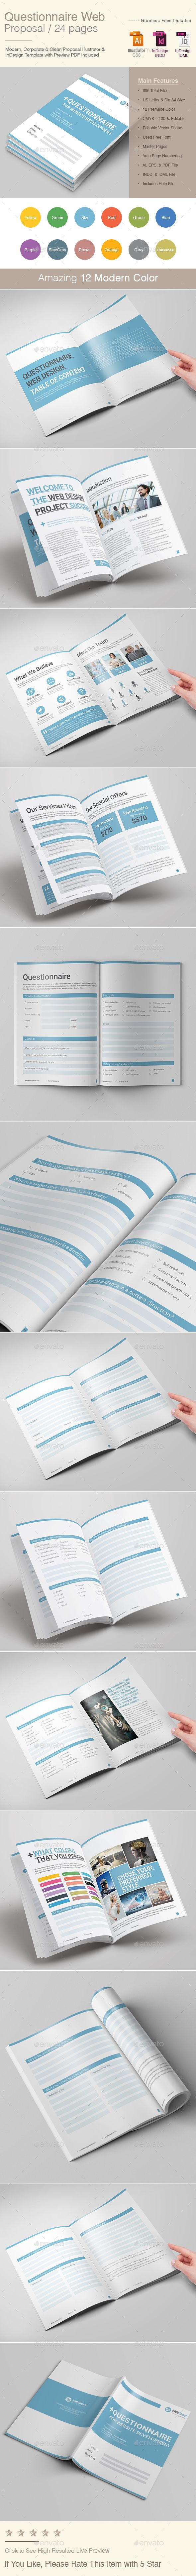 Questionnaire Web Design Proposal | Proposals, Proposal templates ...